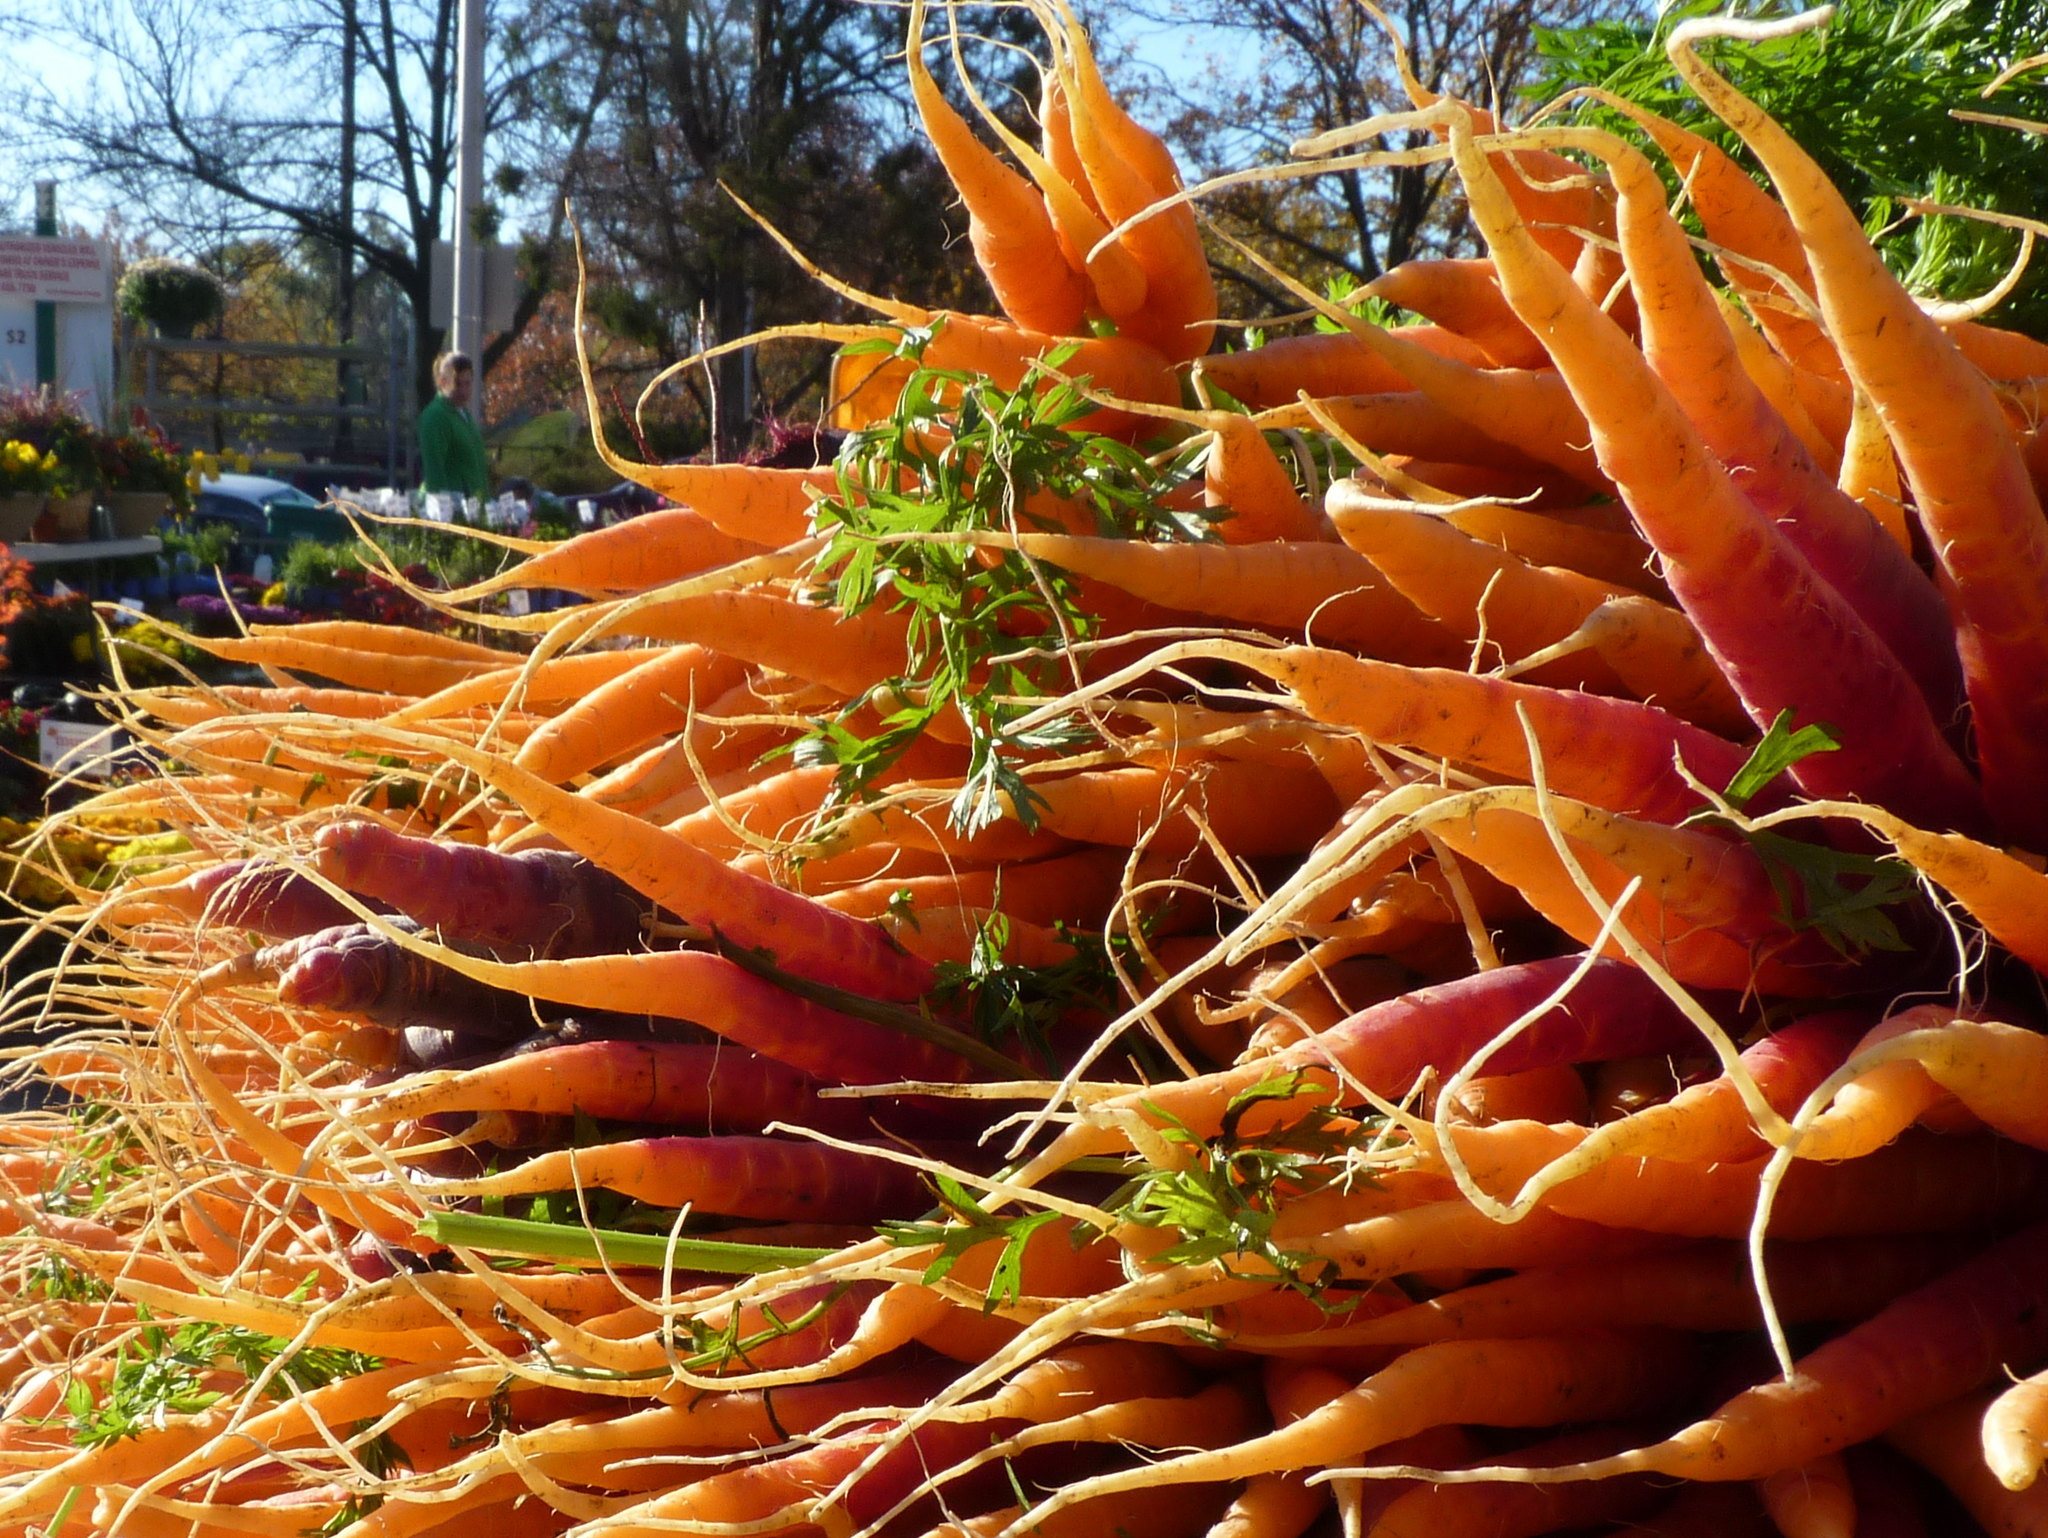 A pile of carrots, skinny end out